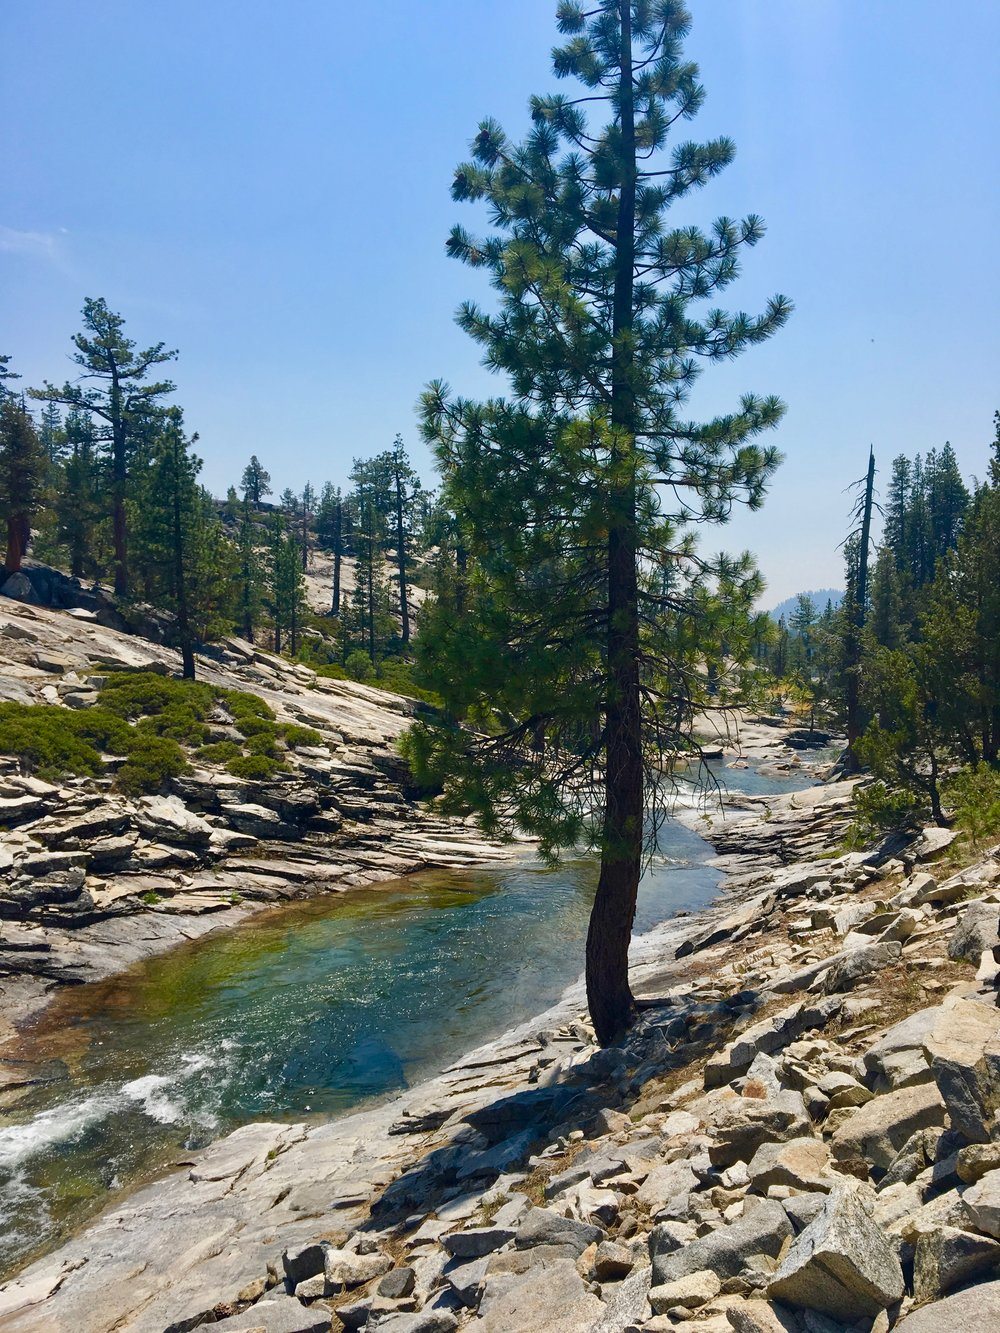 The granite pools of Yosemite Creek.